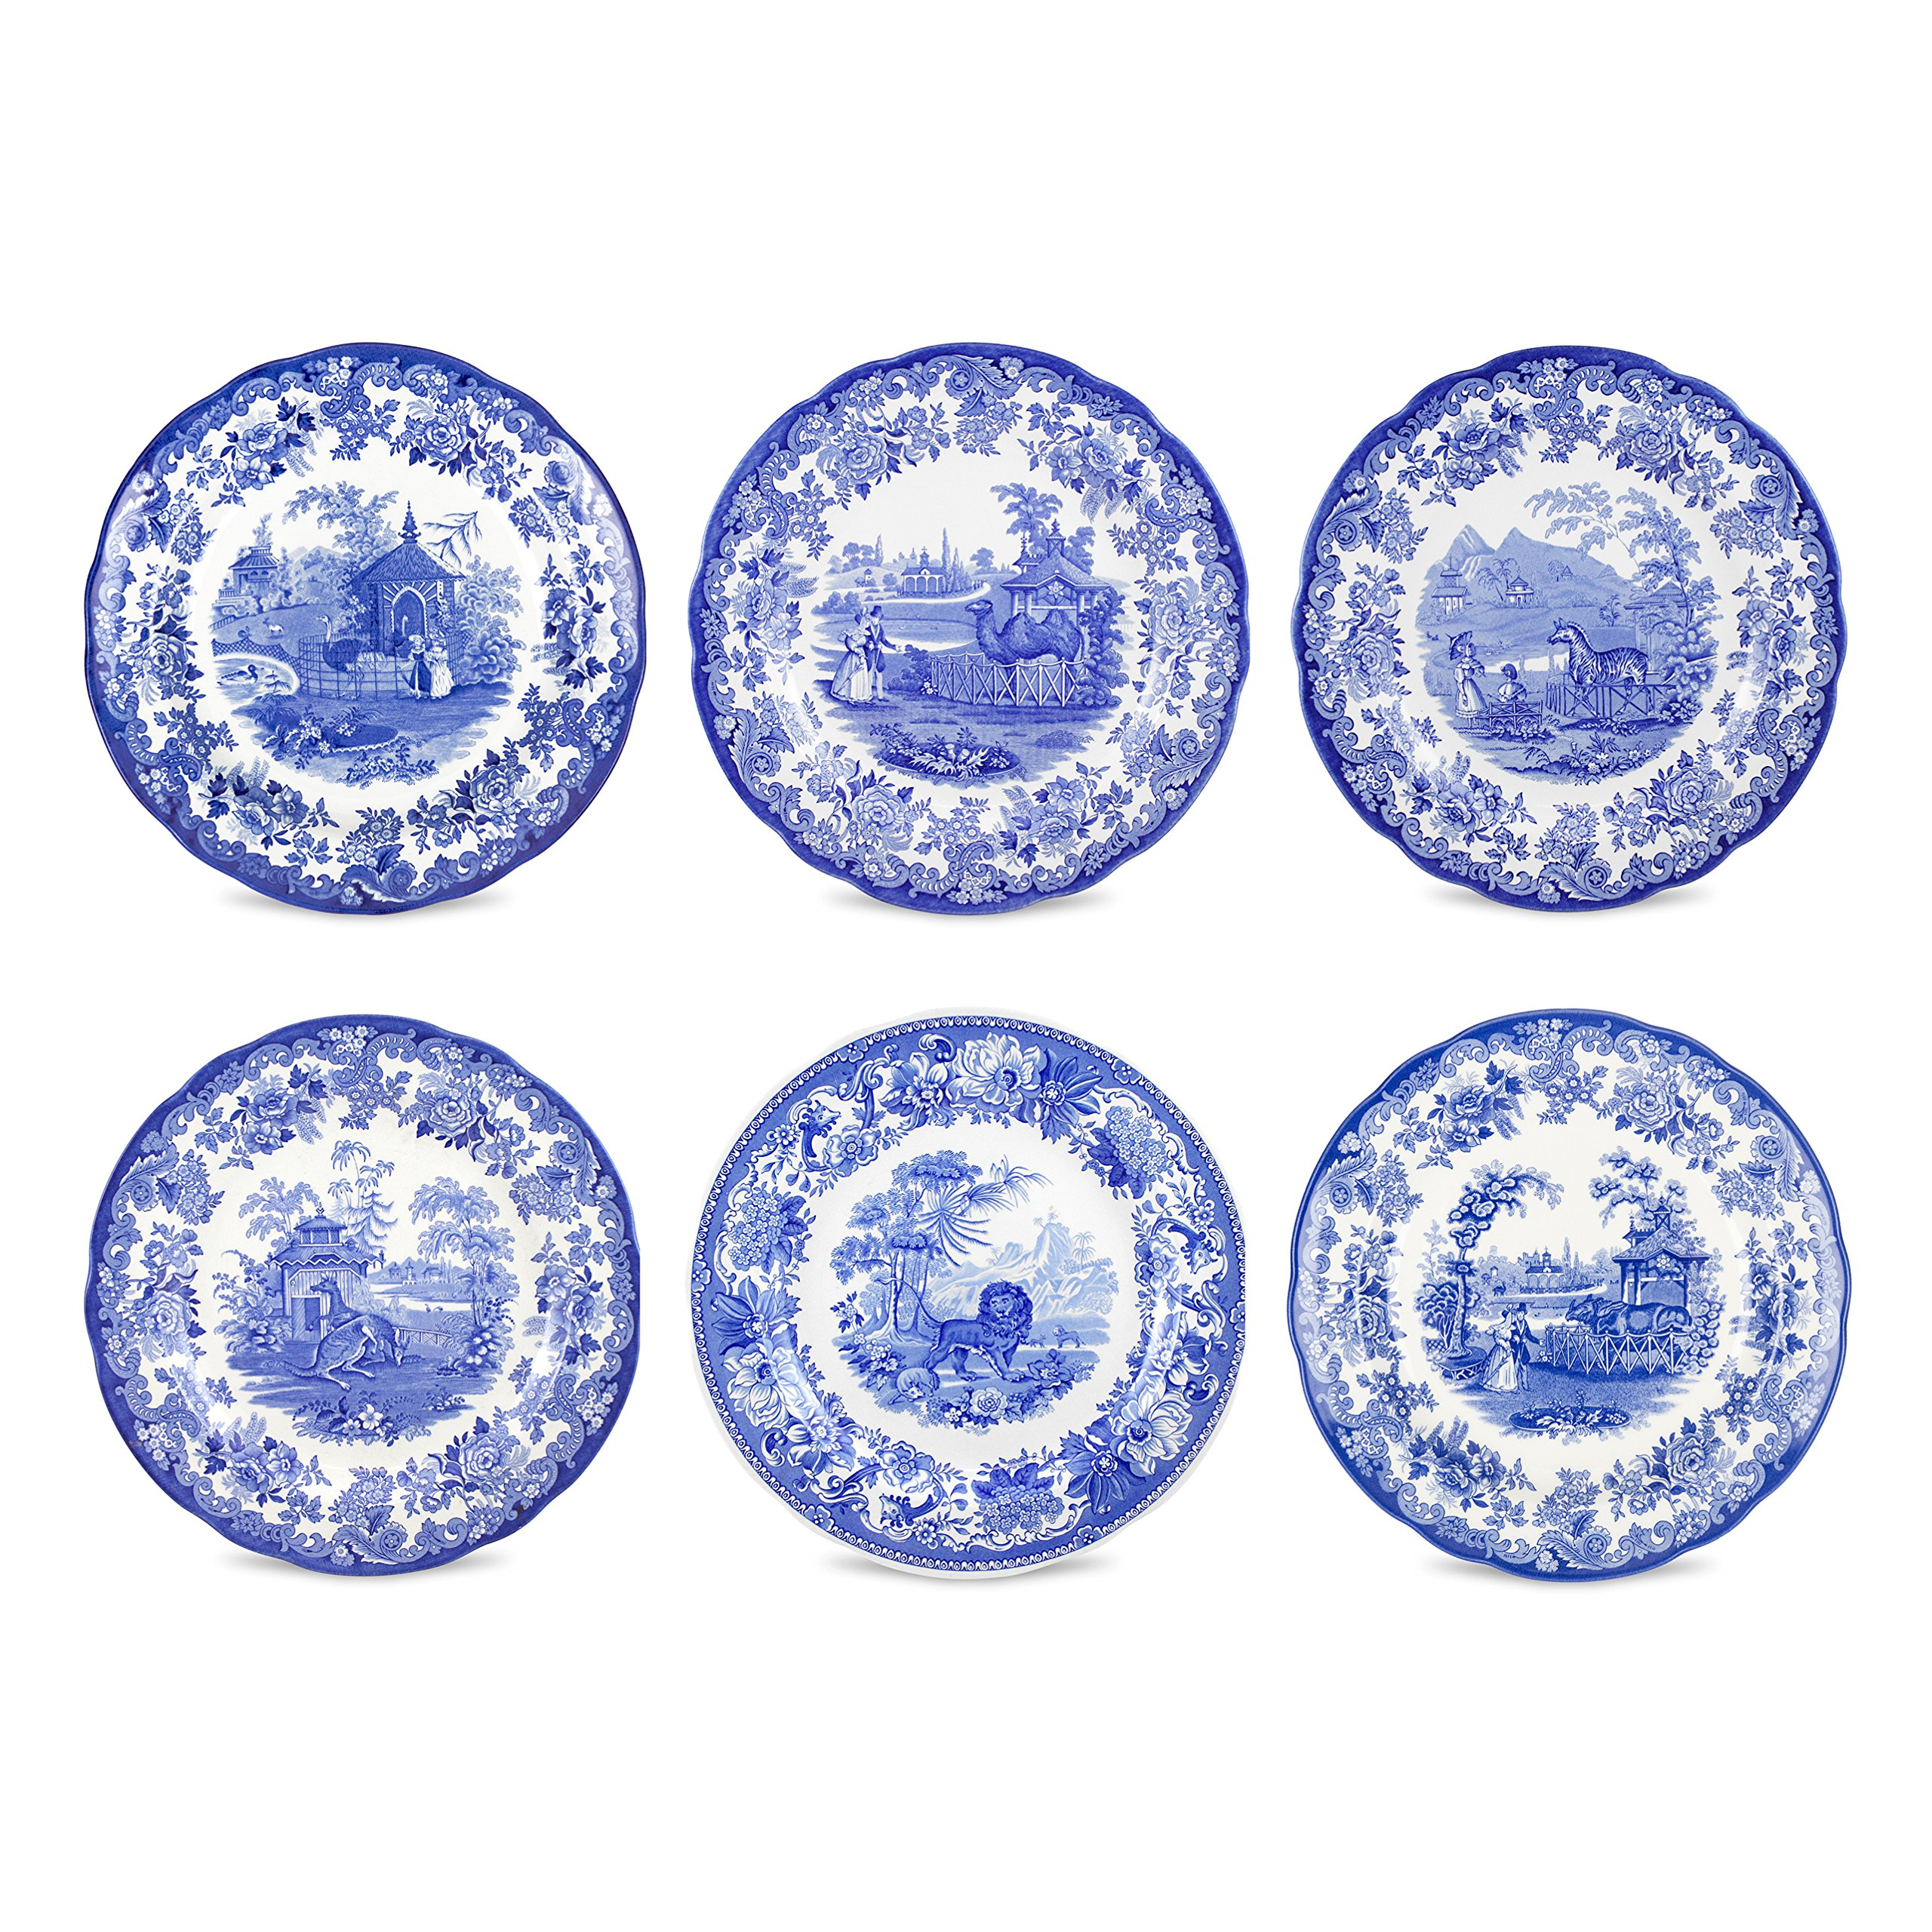 Spode Blue Room Zoological Plates, Set of 6 Assorted Motifs